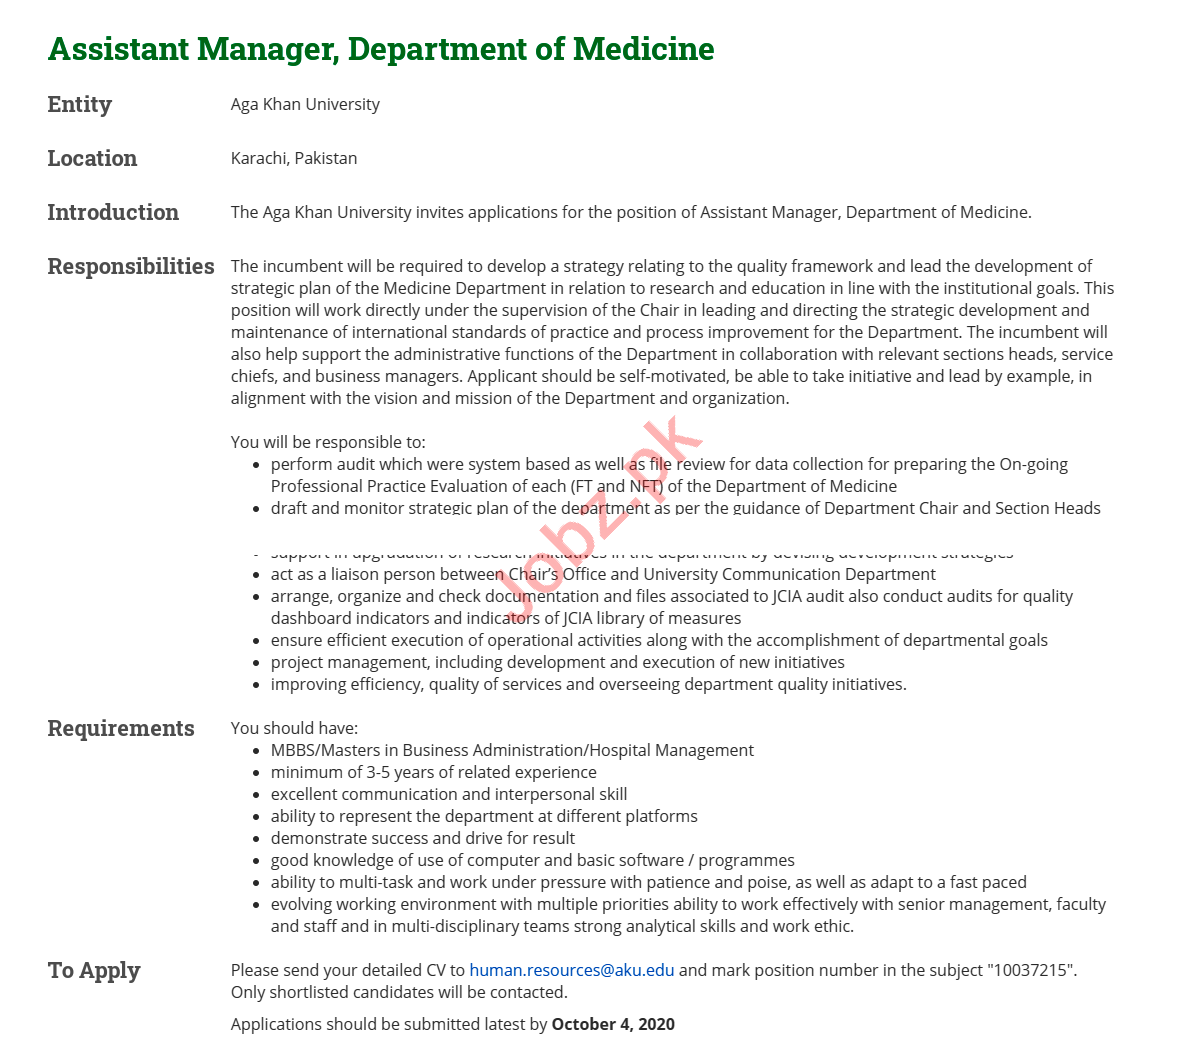 Aga Khan University AKU Karachi Jobs 2020 for Asst Manager